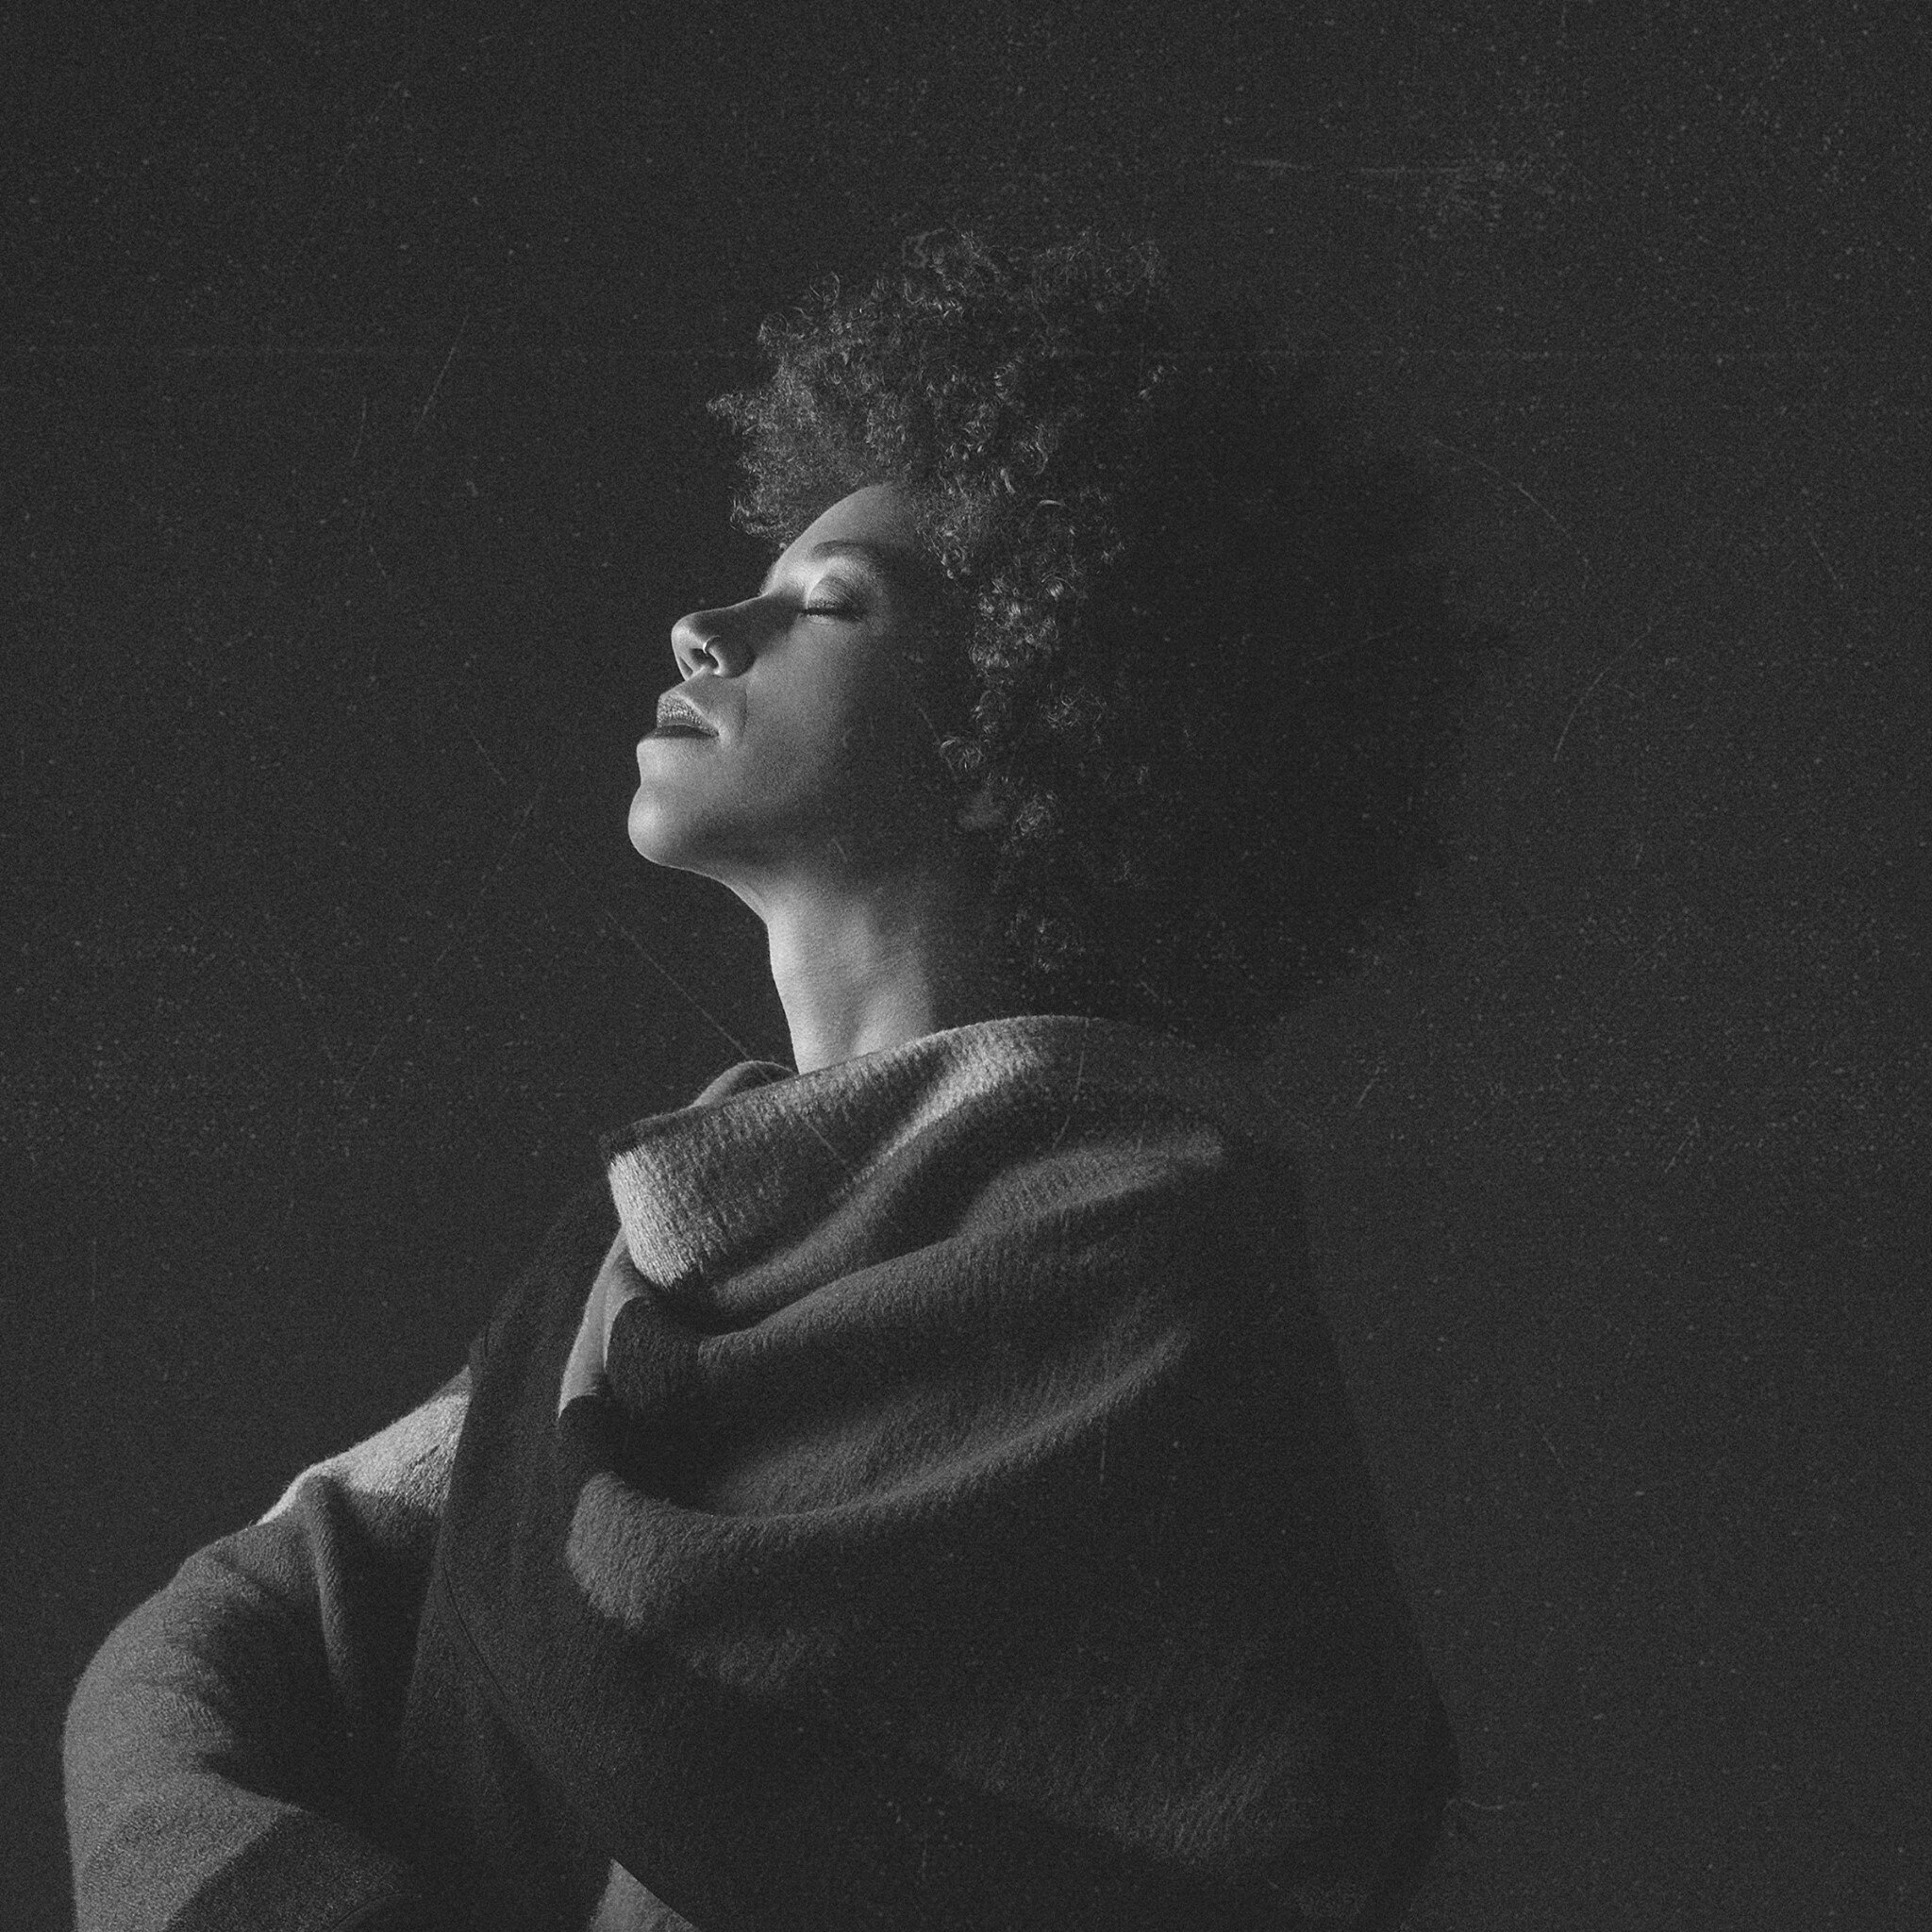 ChastityBrown2019.jpg